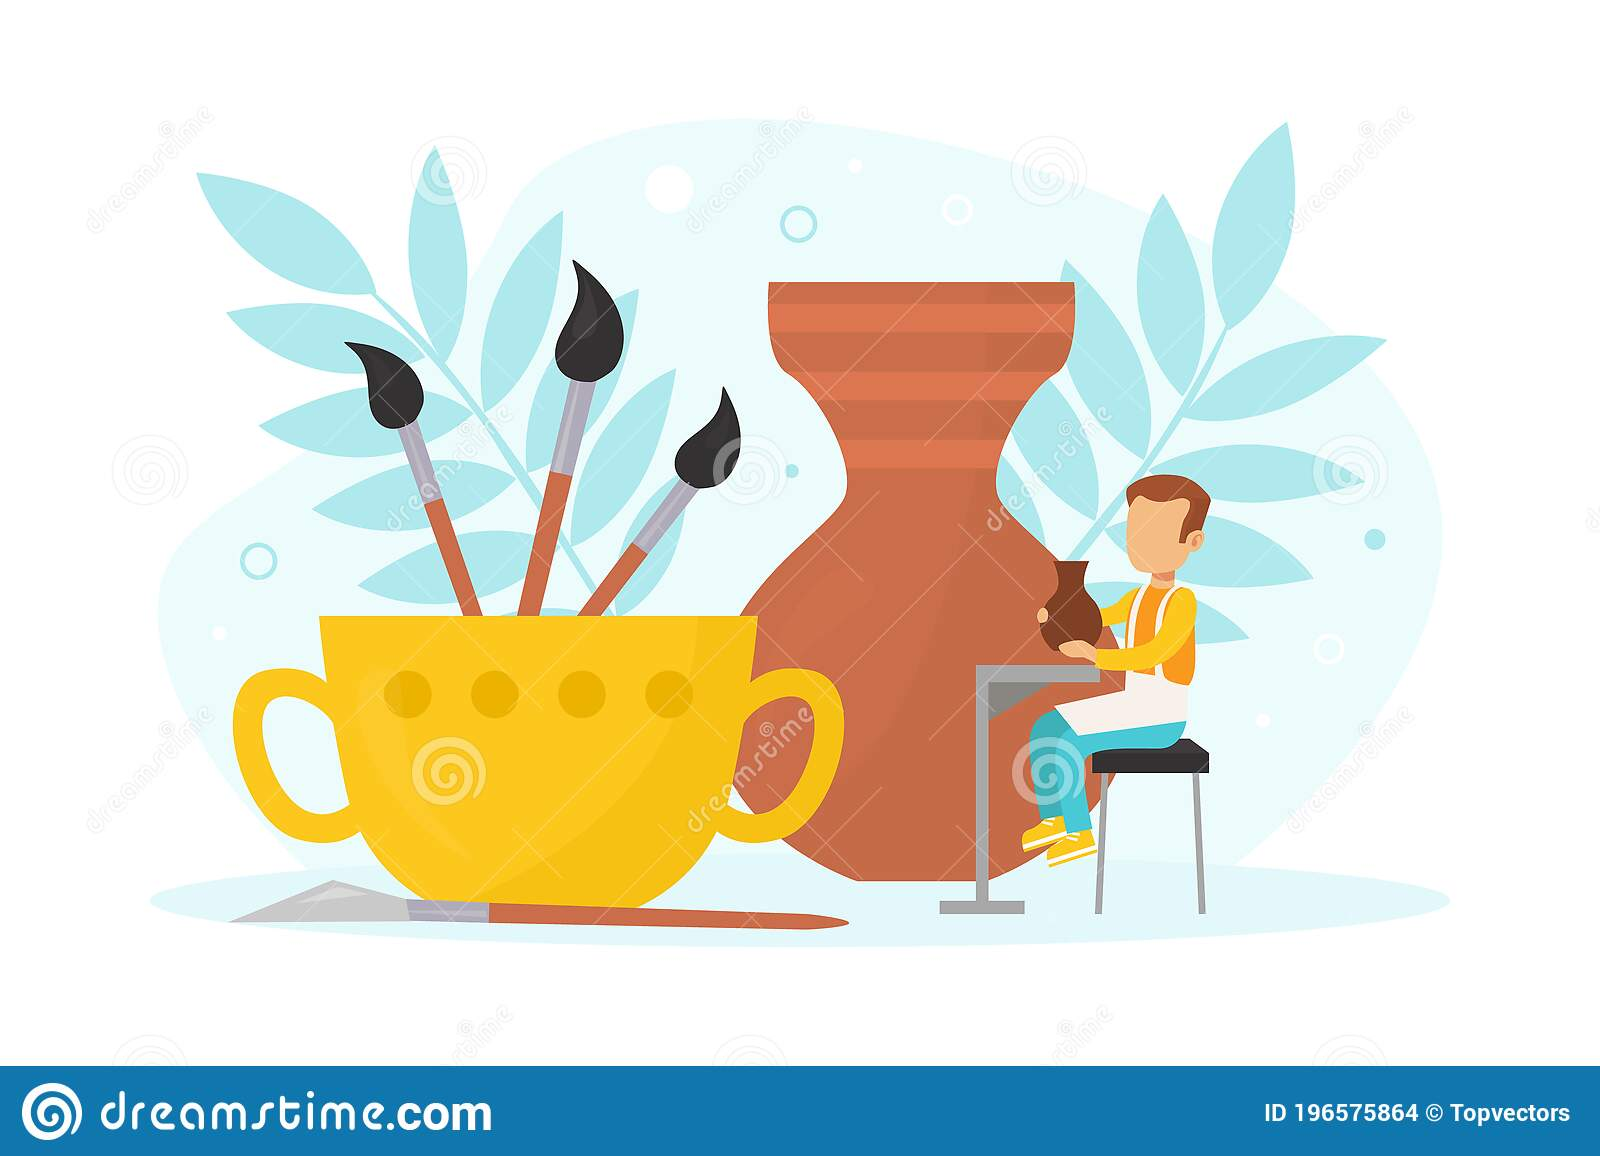 Tiny Boy Making Pot With Clay Pottery And Ceramics Creative Children Education Vector Illustration Stock Vector Illustration Of Crafting Crockery 196575864